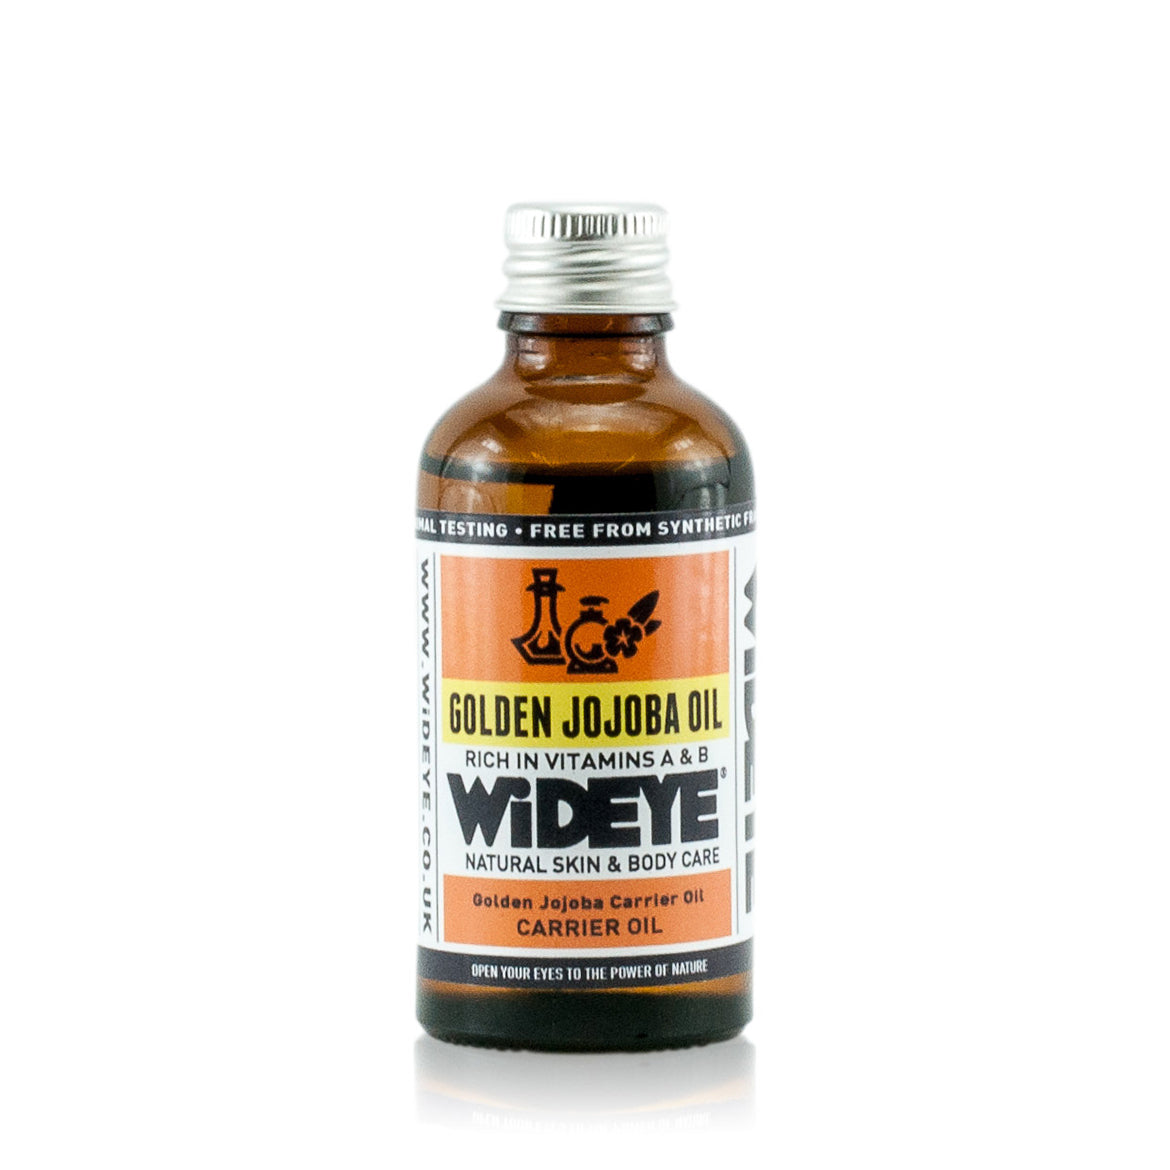 Natural aromatherapy Jojoba carrier oil for massage and blending in glass bottle by WiDEYE.